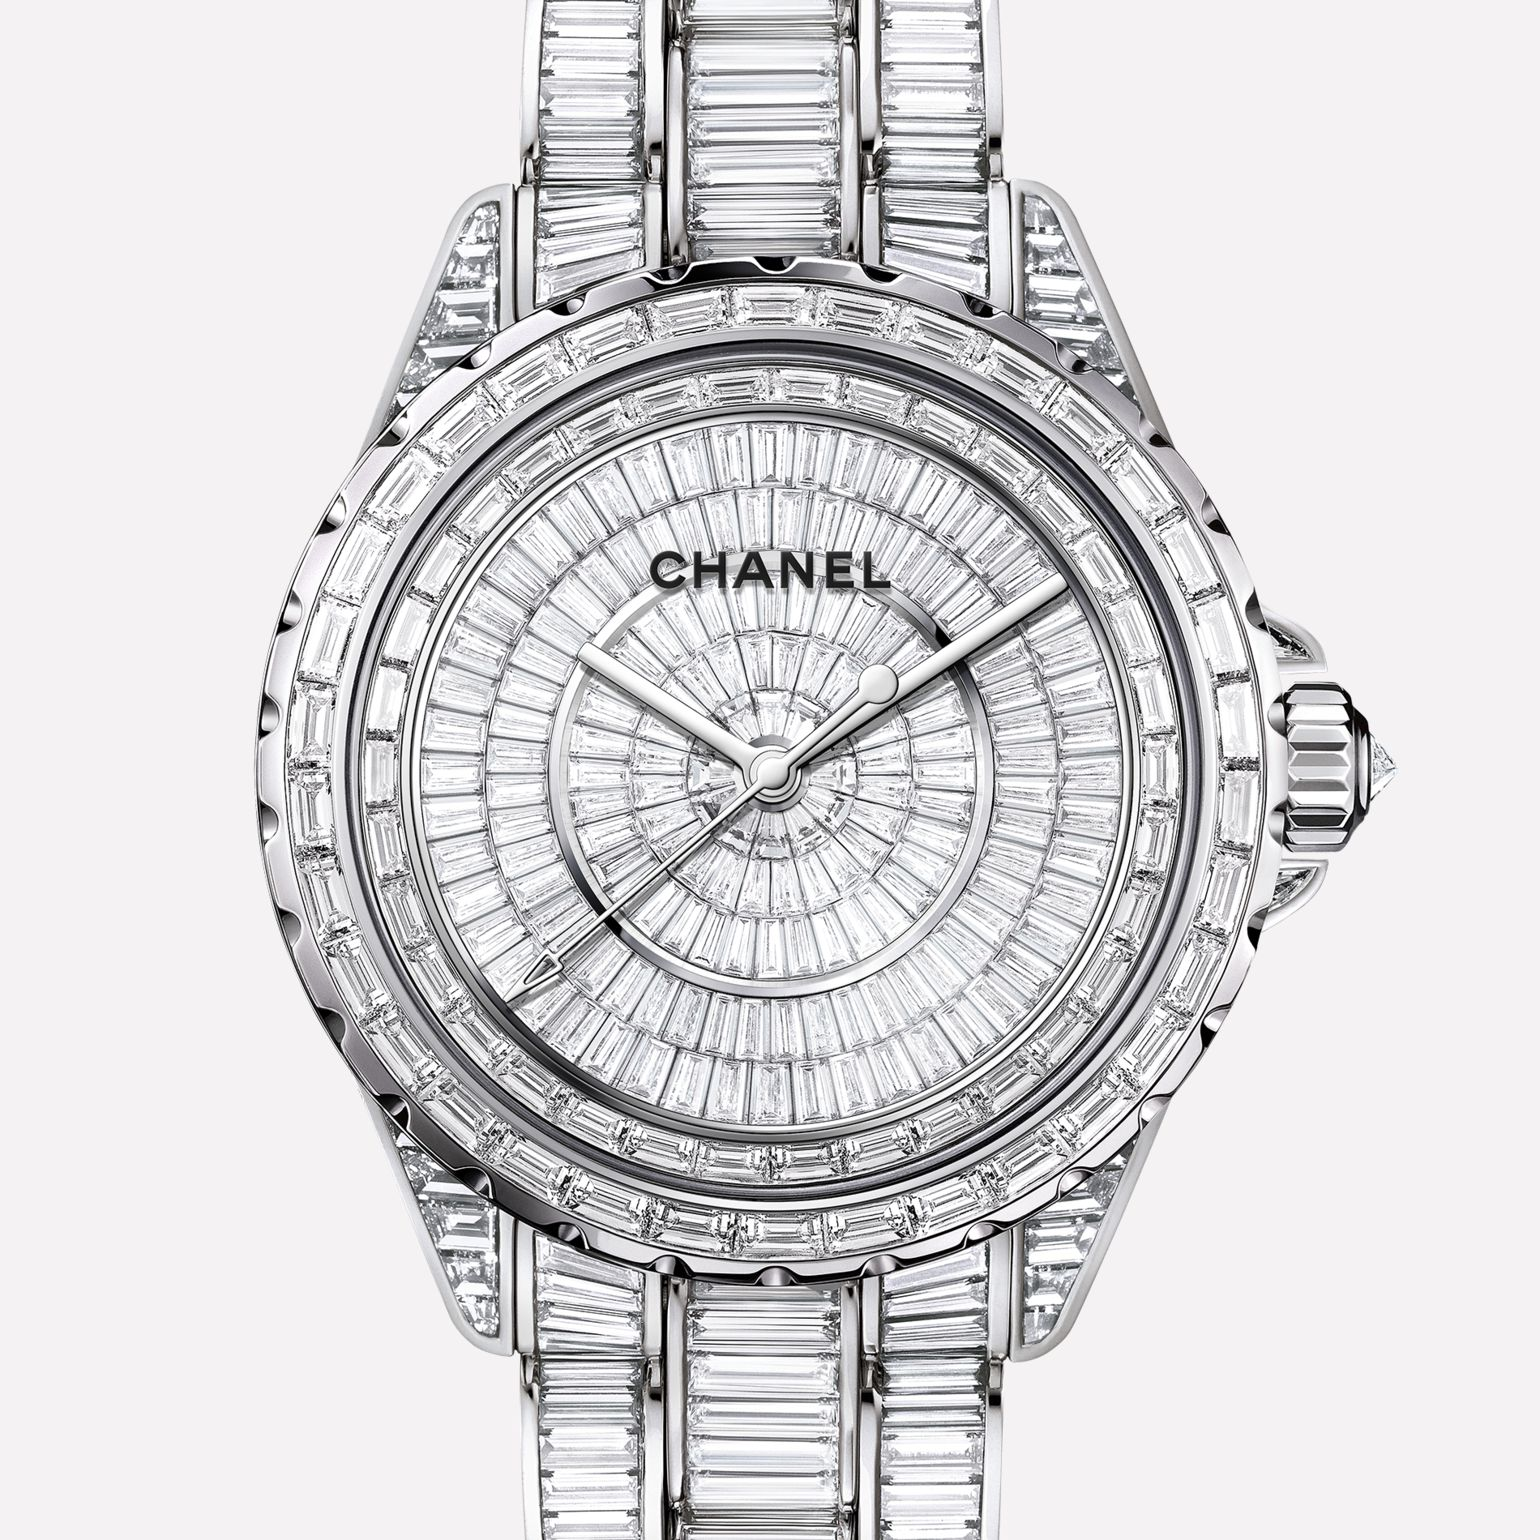 J12 High Jewelry Watch White gold, case and bracelet set with baguette-cut diamonds and baguette-cut black spinels